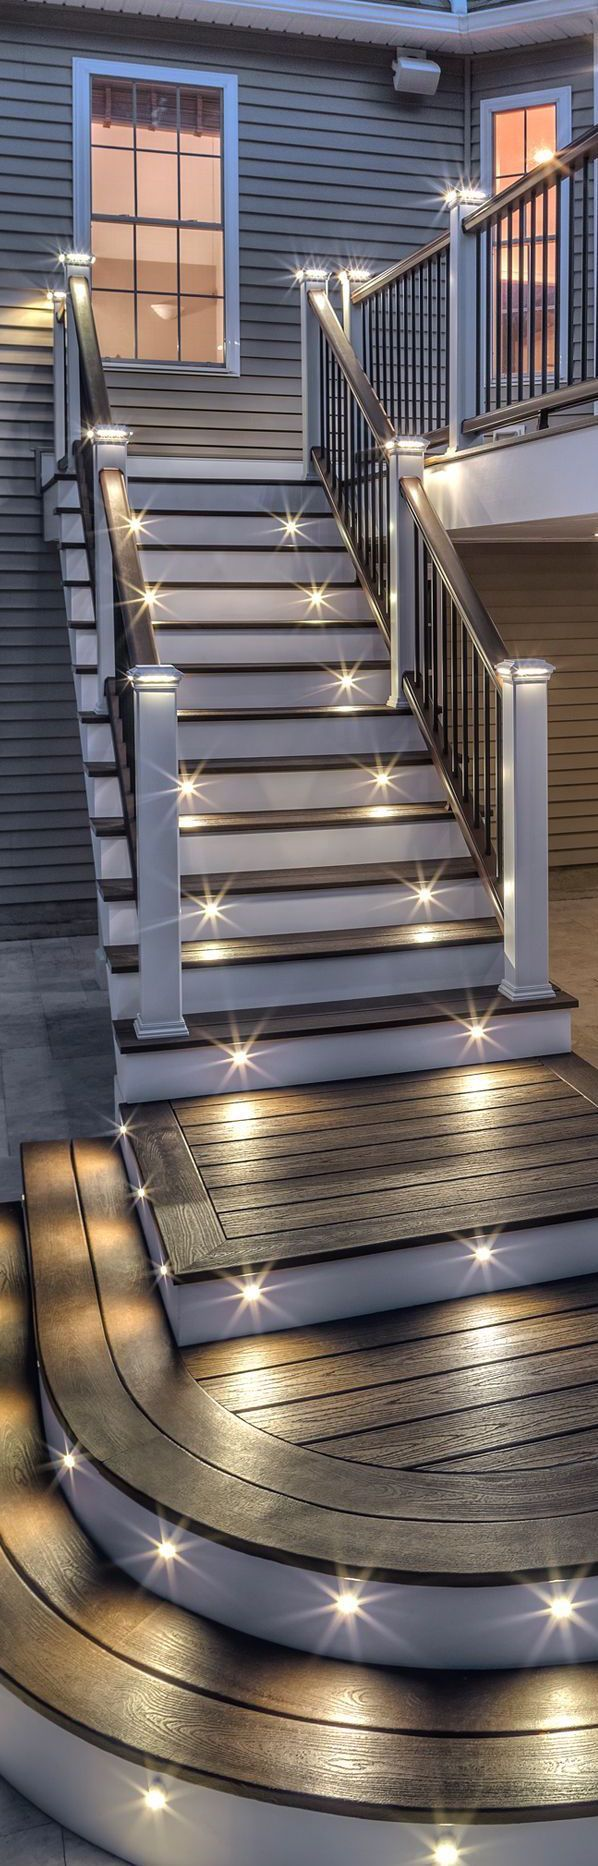 Stair Lighting. Let our personal shoppers help you find the perfect lighting fixture for your home - for free!